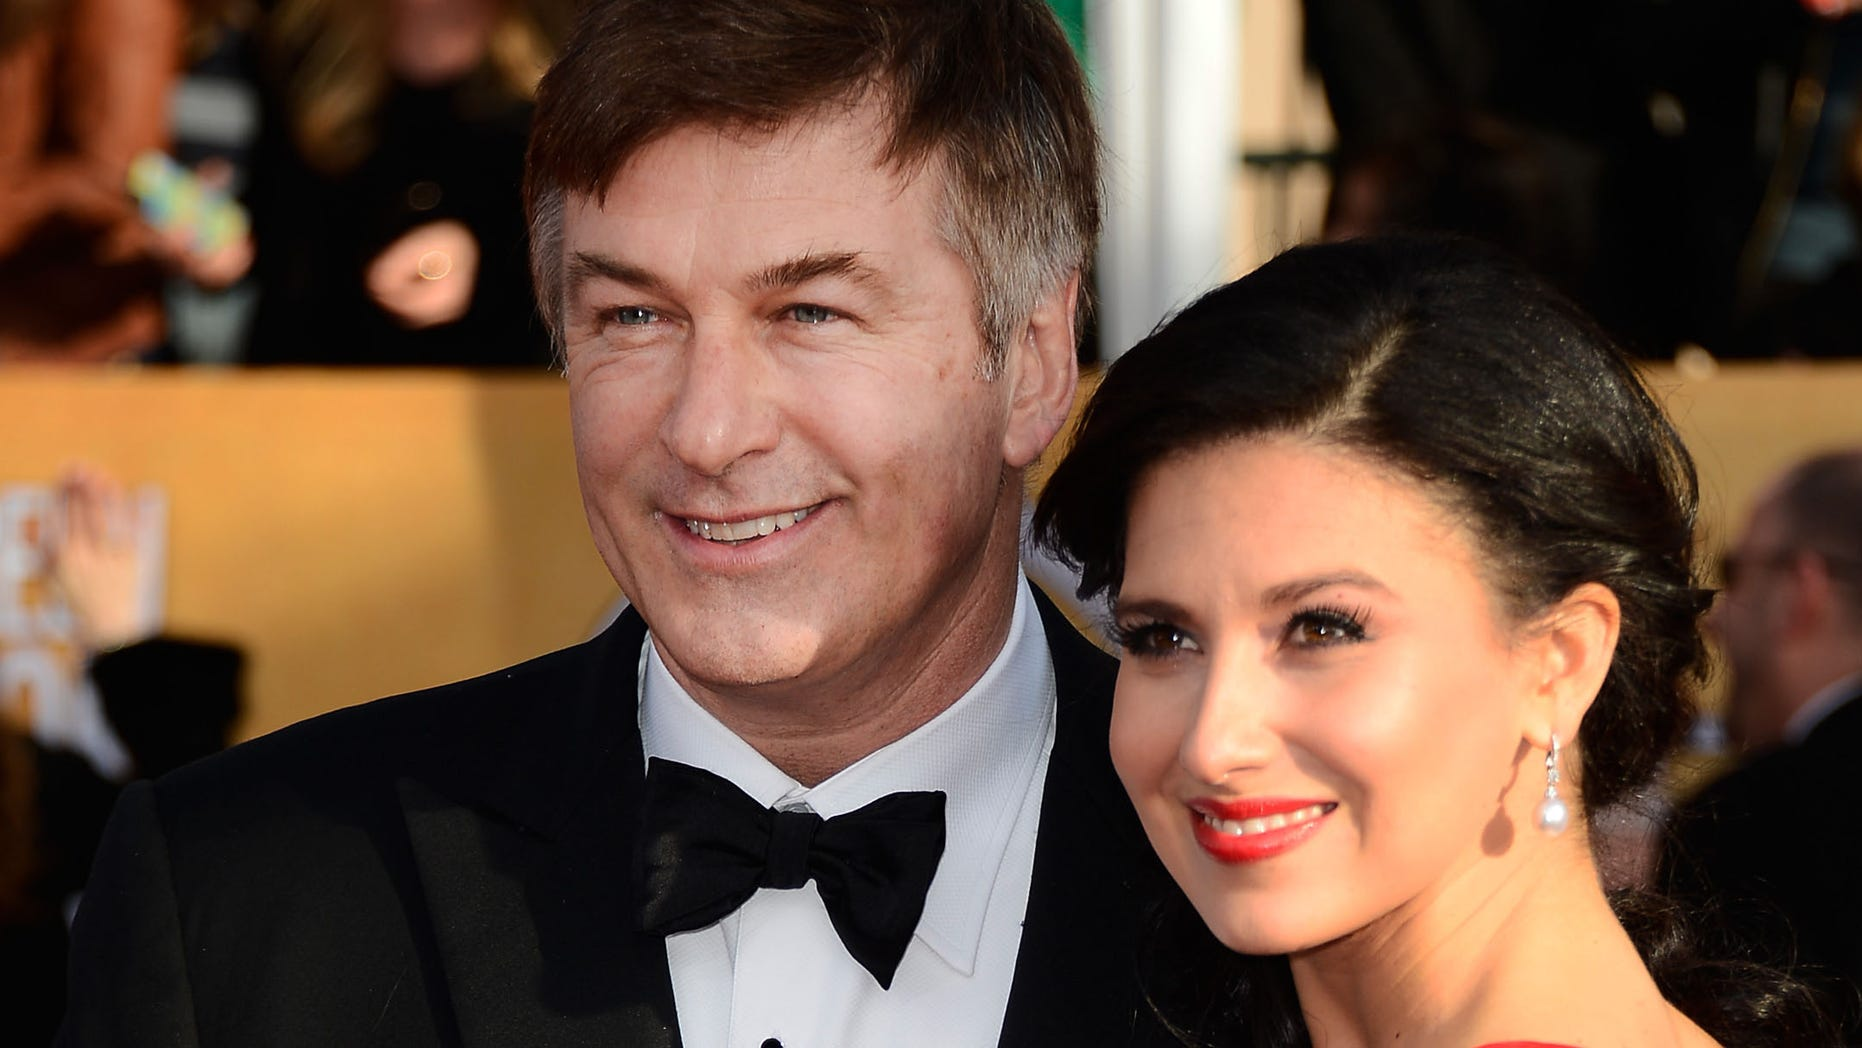 LOS ANGELES, CA - JANUARY 27:  Actor Alec Baldwin and wife Hilaria Thomas arrive at the 19th Annual Screen Actors Guild Awards held at The Shrine Auditorium on January 27, 2013 in Los Angeles, California.  (Photo by Frazer Harrison/Getty Images)